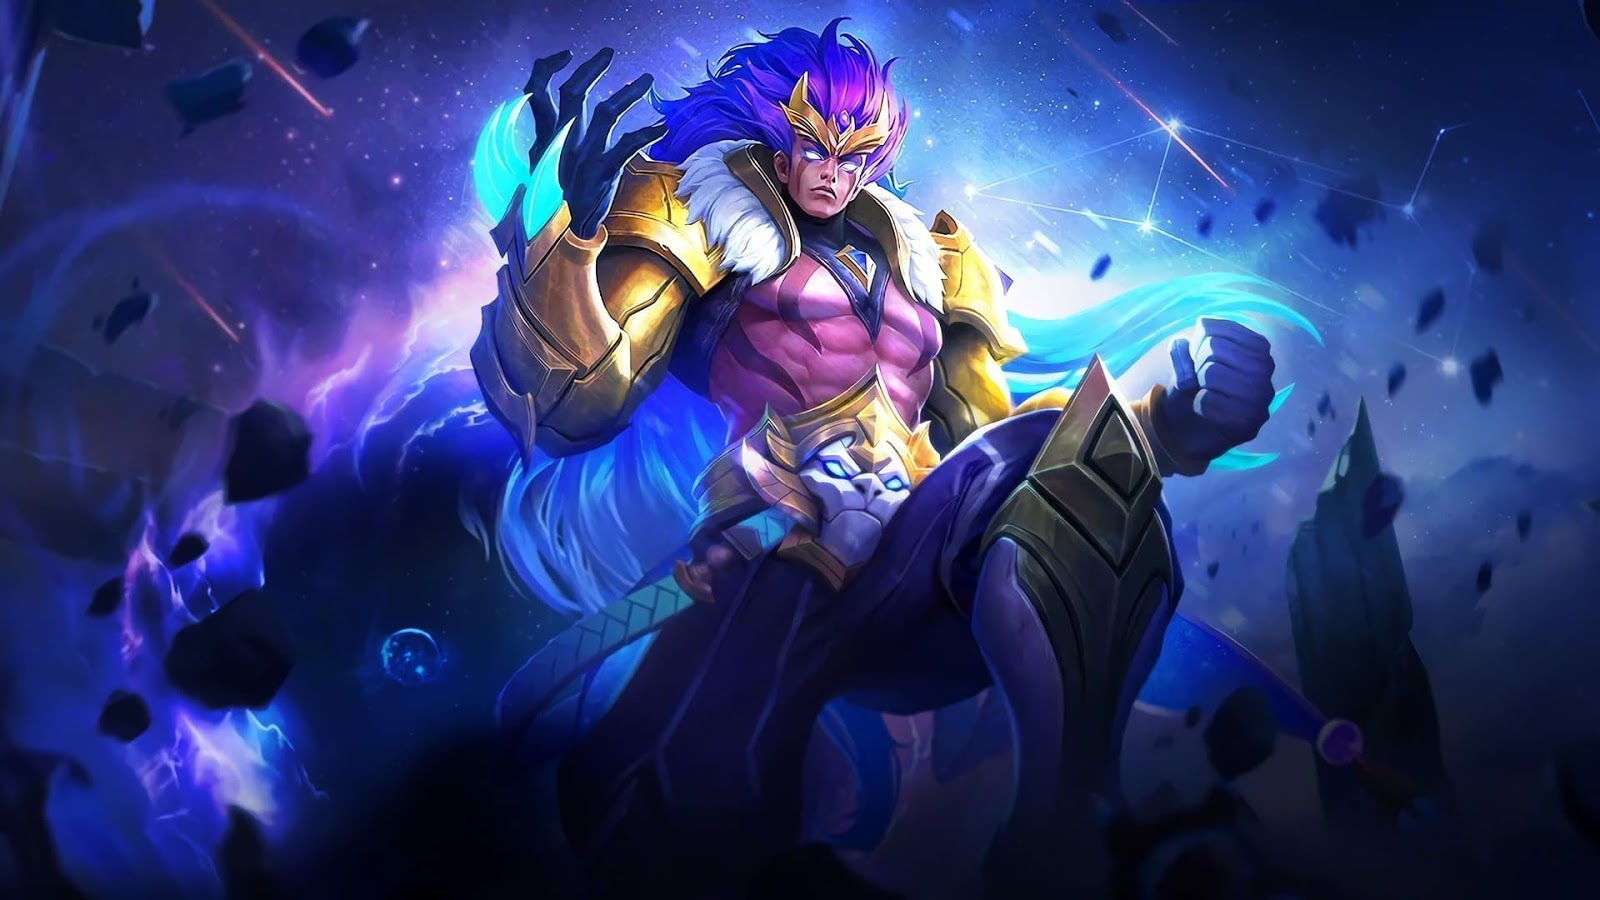 Wallpaper Badang Leo Skin Mobile Legends HD for PC